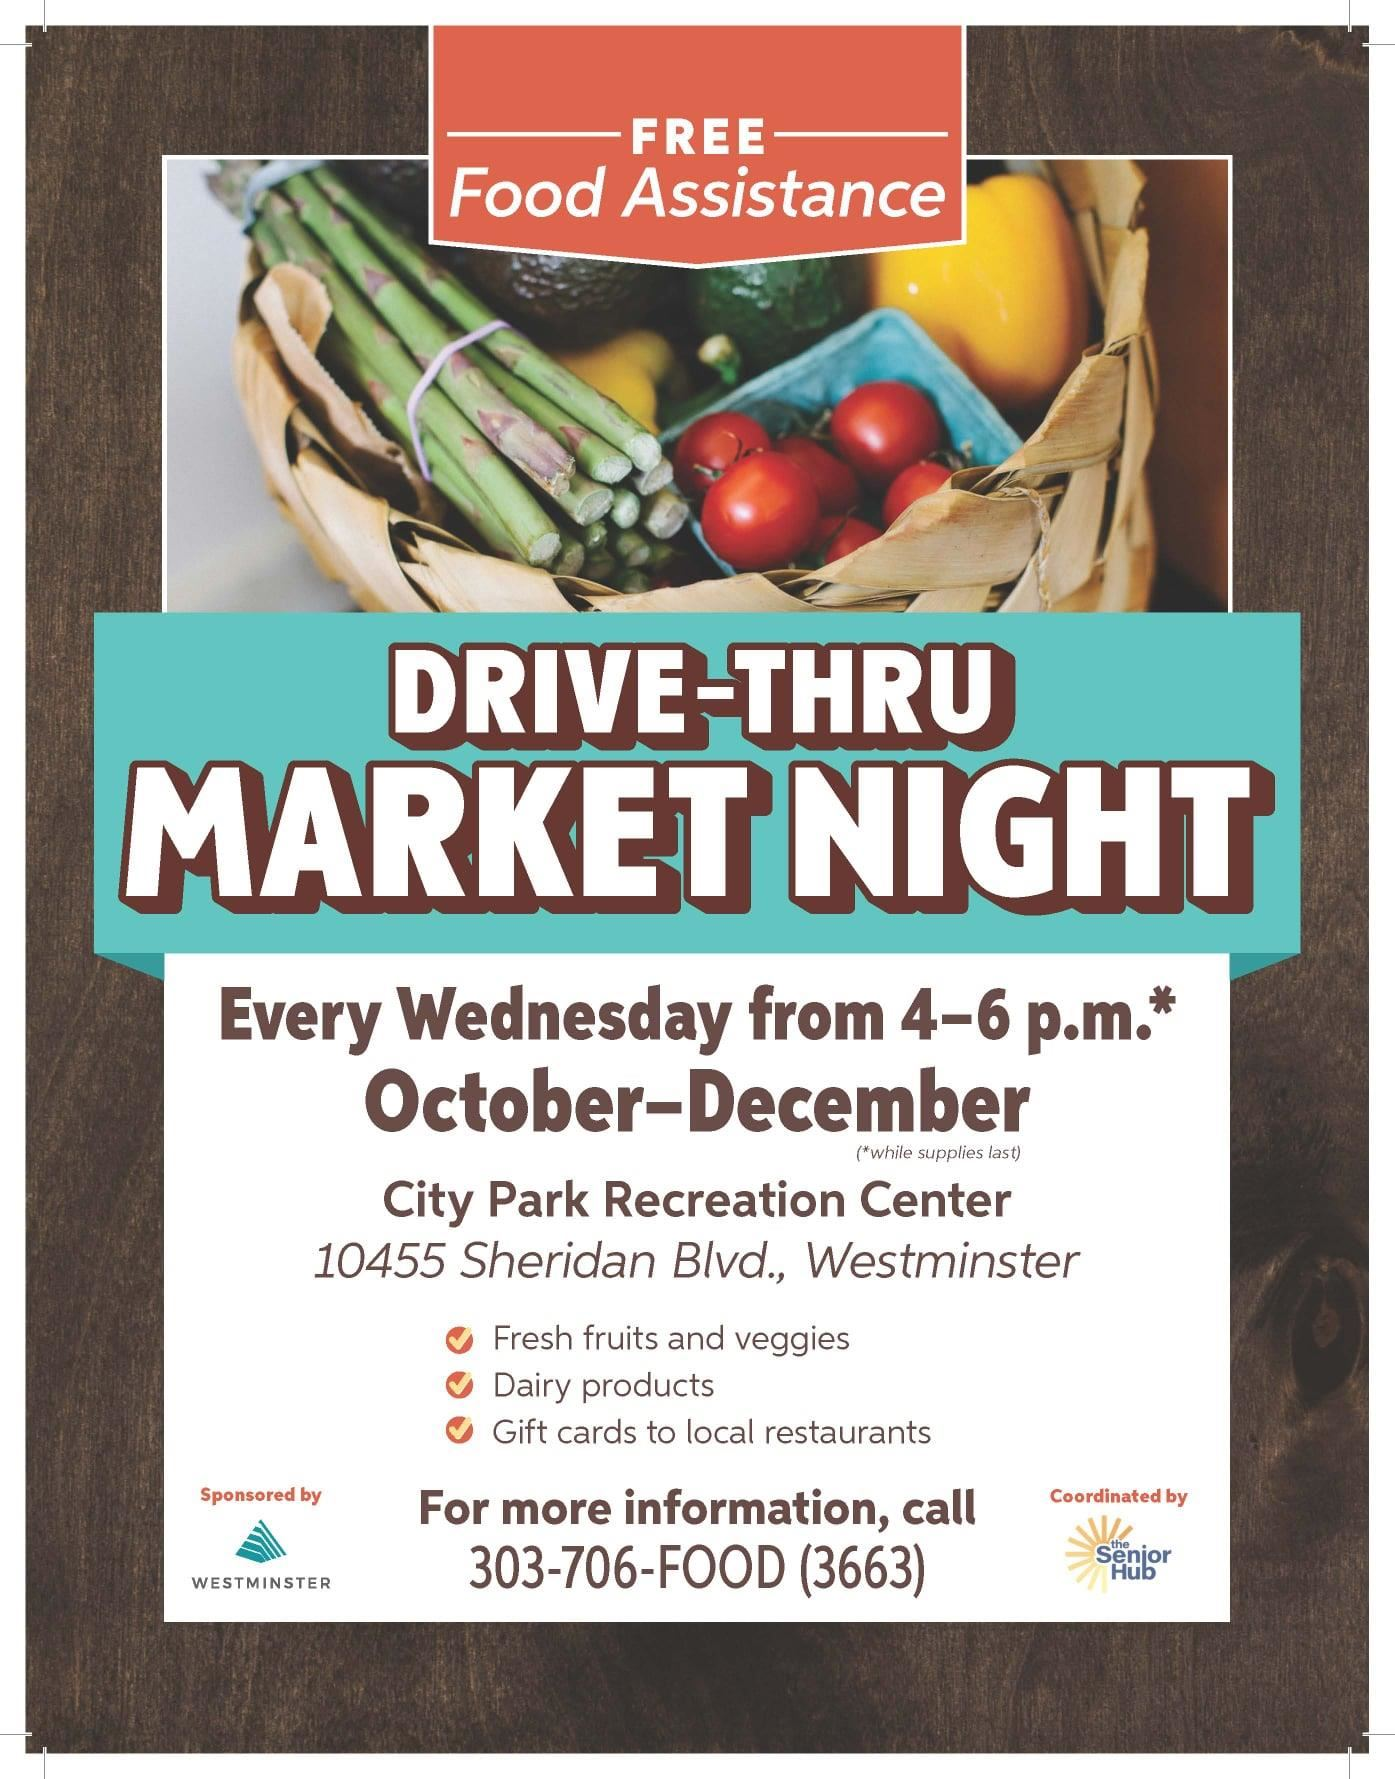 Drive-Thru Market Night poster